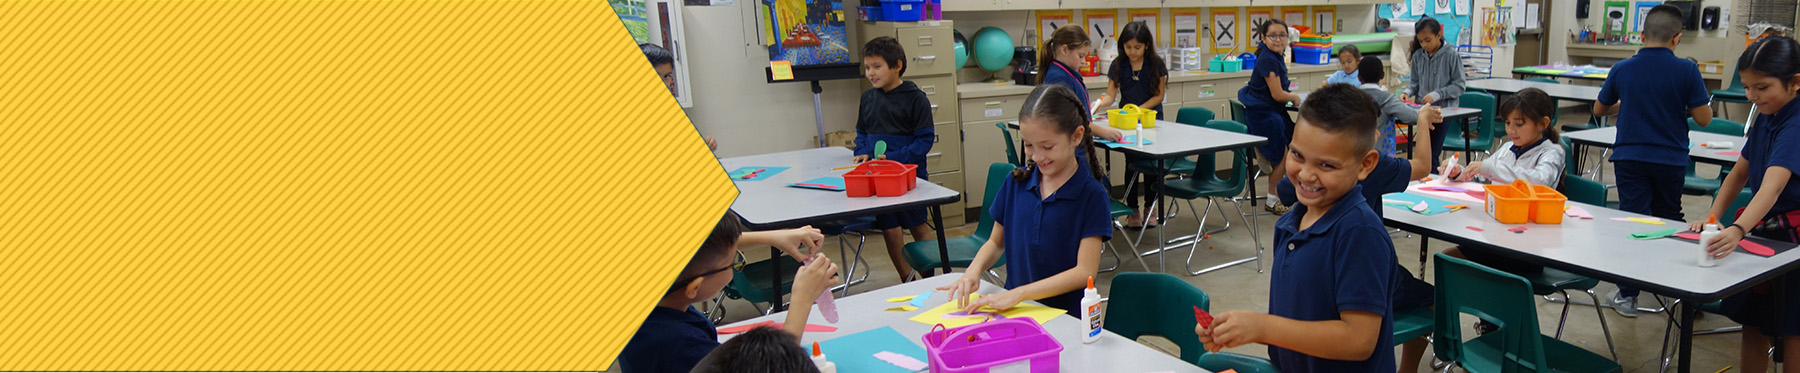 Fowler Elementary students enjoying arts and crafts in the classroom